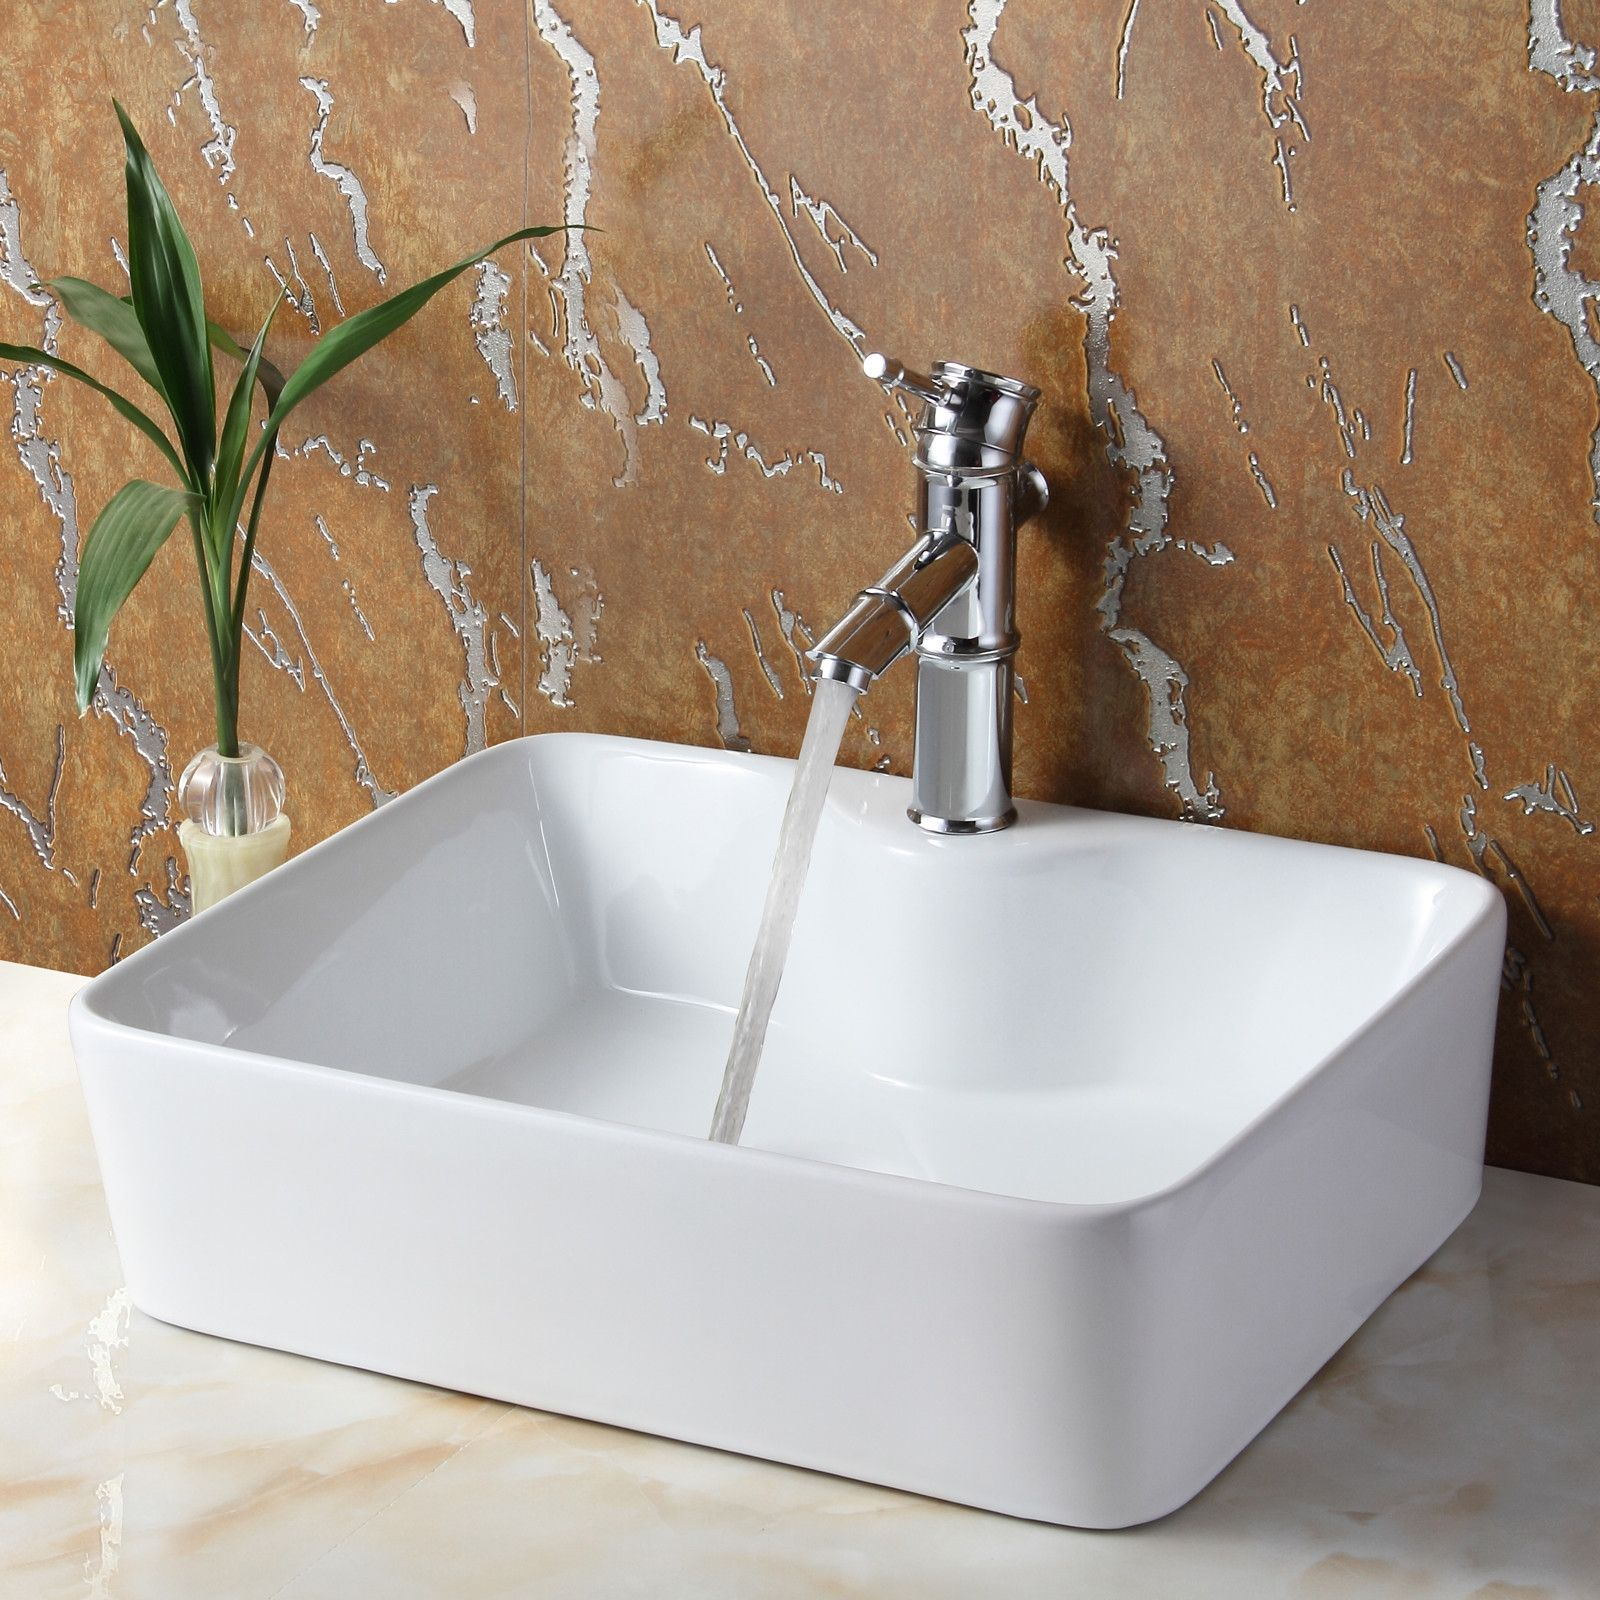 Gentil Funky Bathroom Sinks